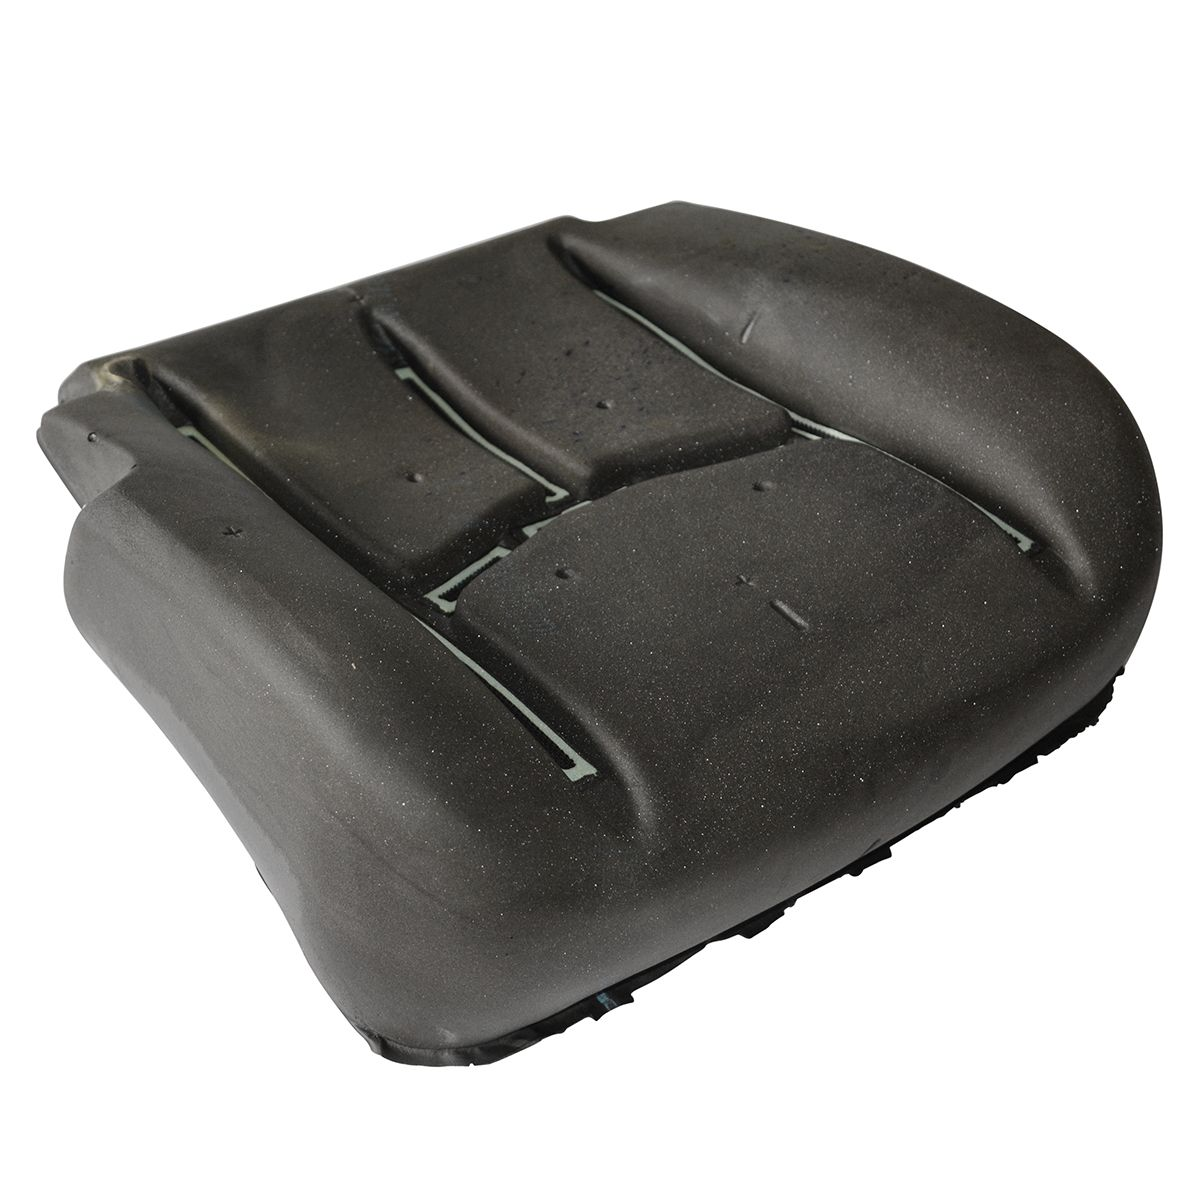 Awesome Details About Oem Power Seat Cushion Pad Front Lower Driver Side Lh Left For Gm Onthecornerstone Fun Painted Chair Ideas Images Onthecornerstoneorg